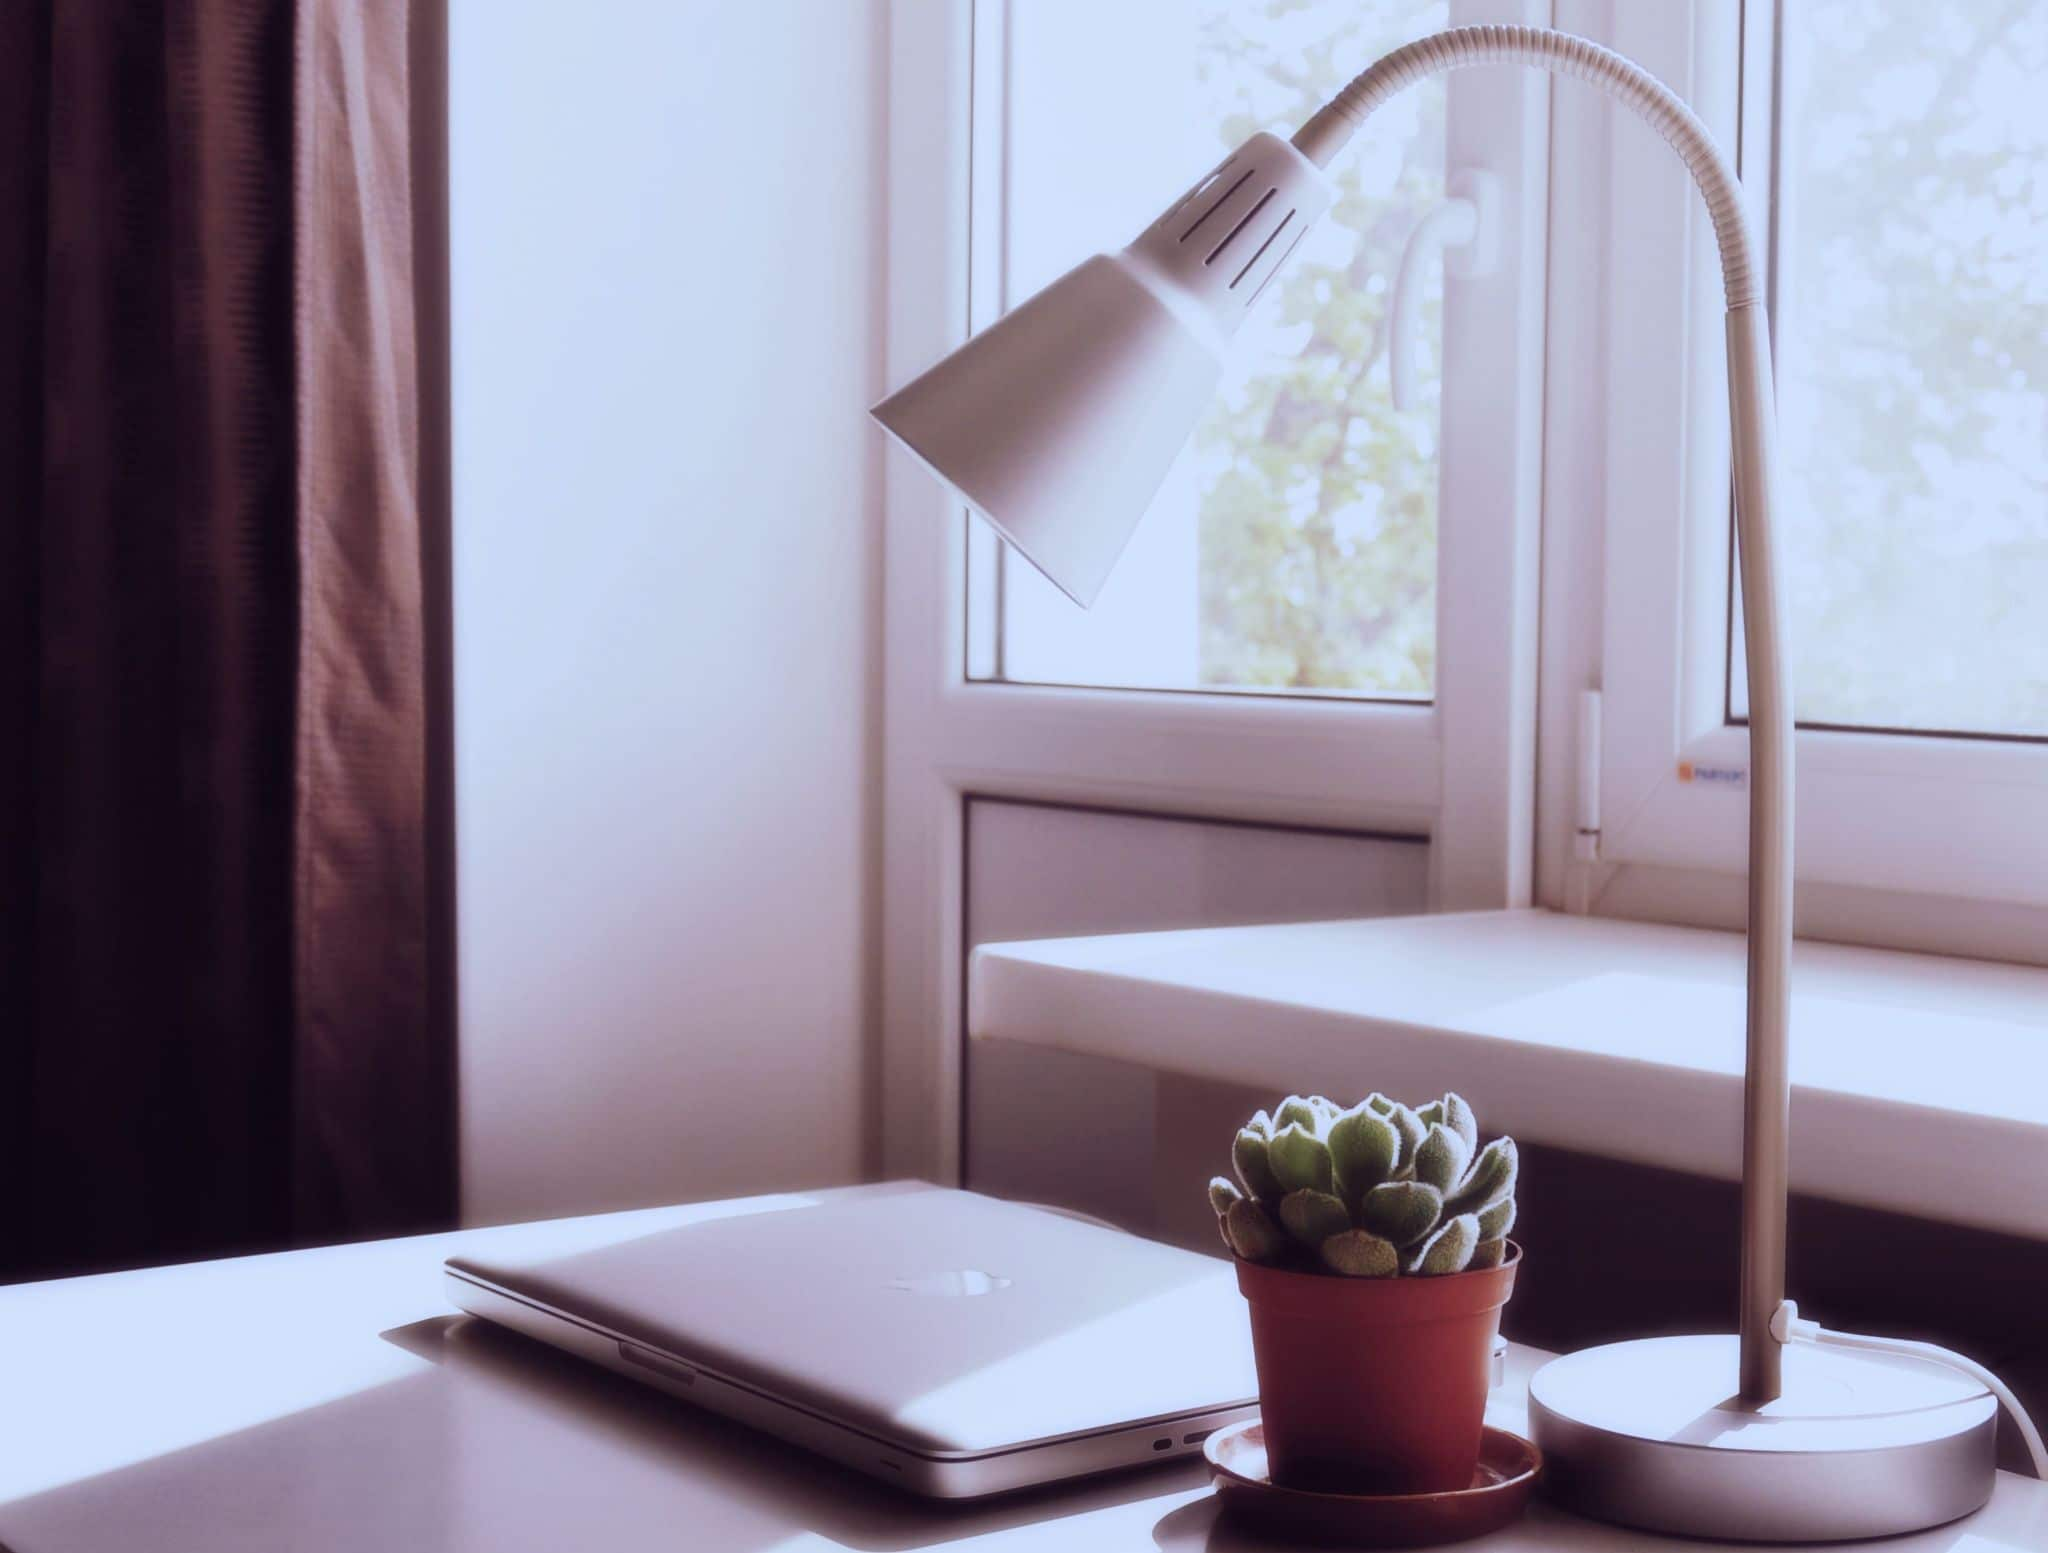 How to Improve Your Home Office Lighting. Desktop with adjustable lamp in the casual minimalistic interior